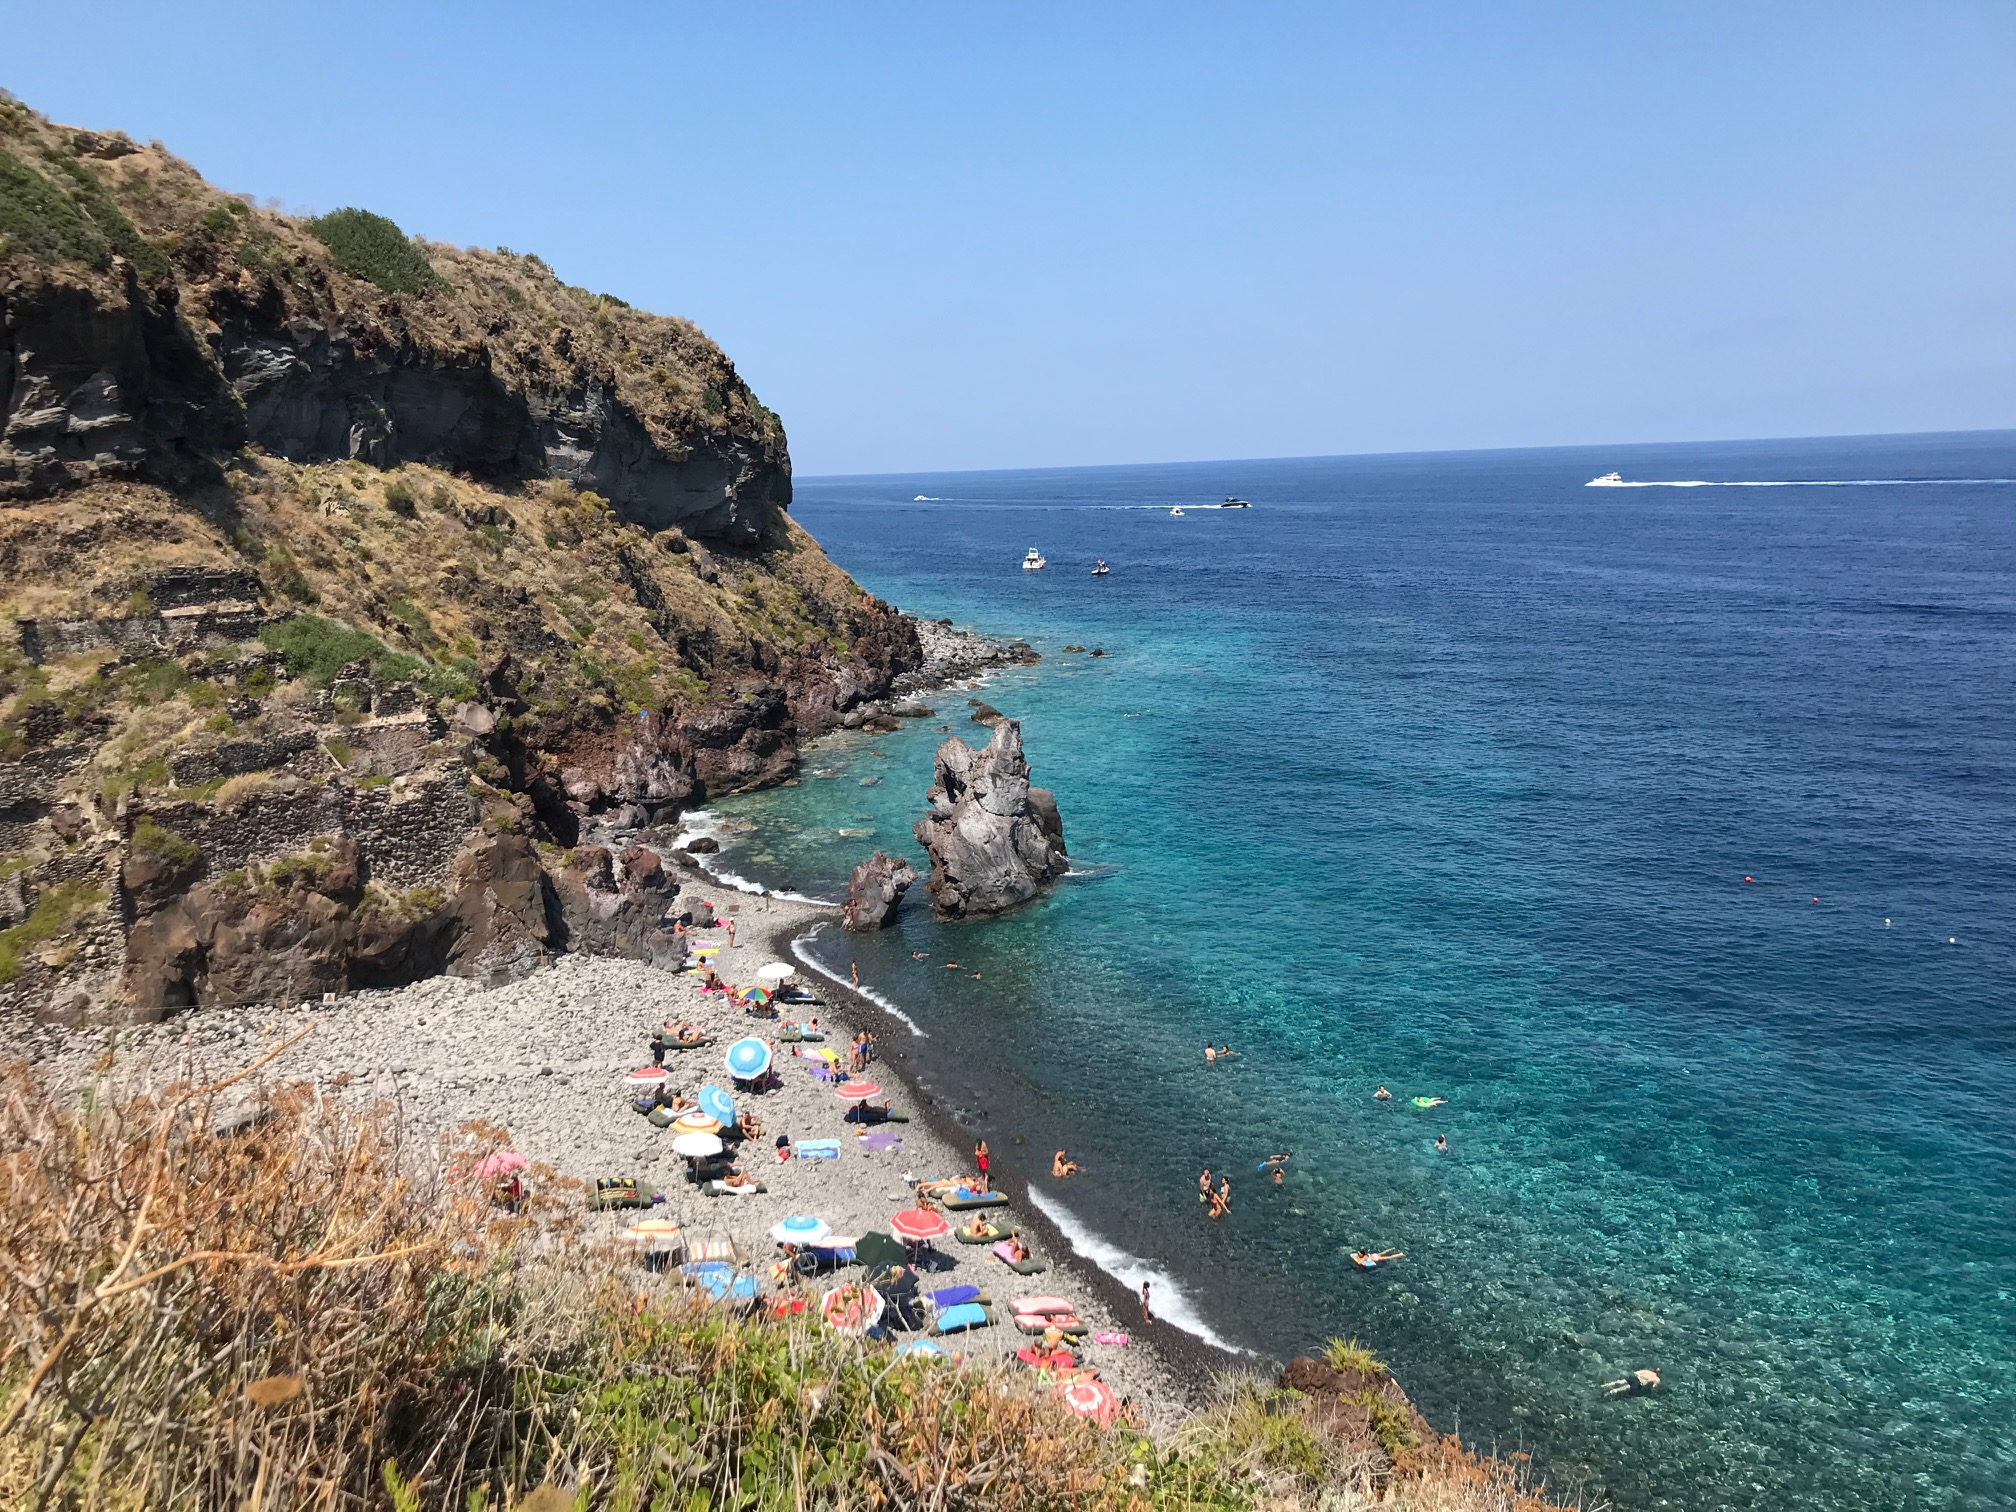 The thing about Sicily is…